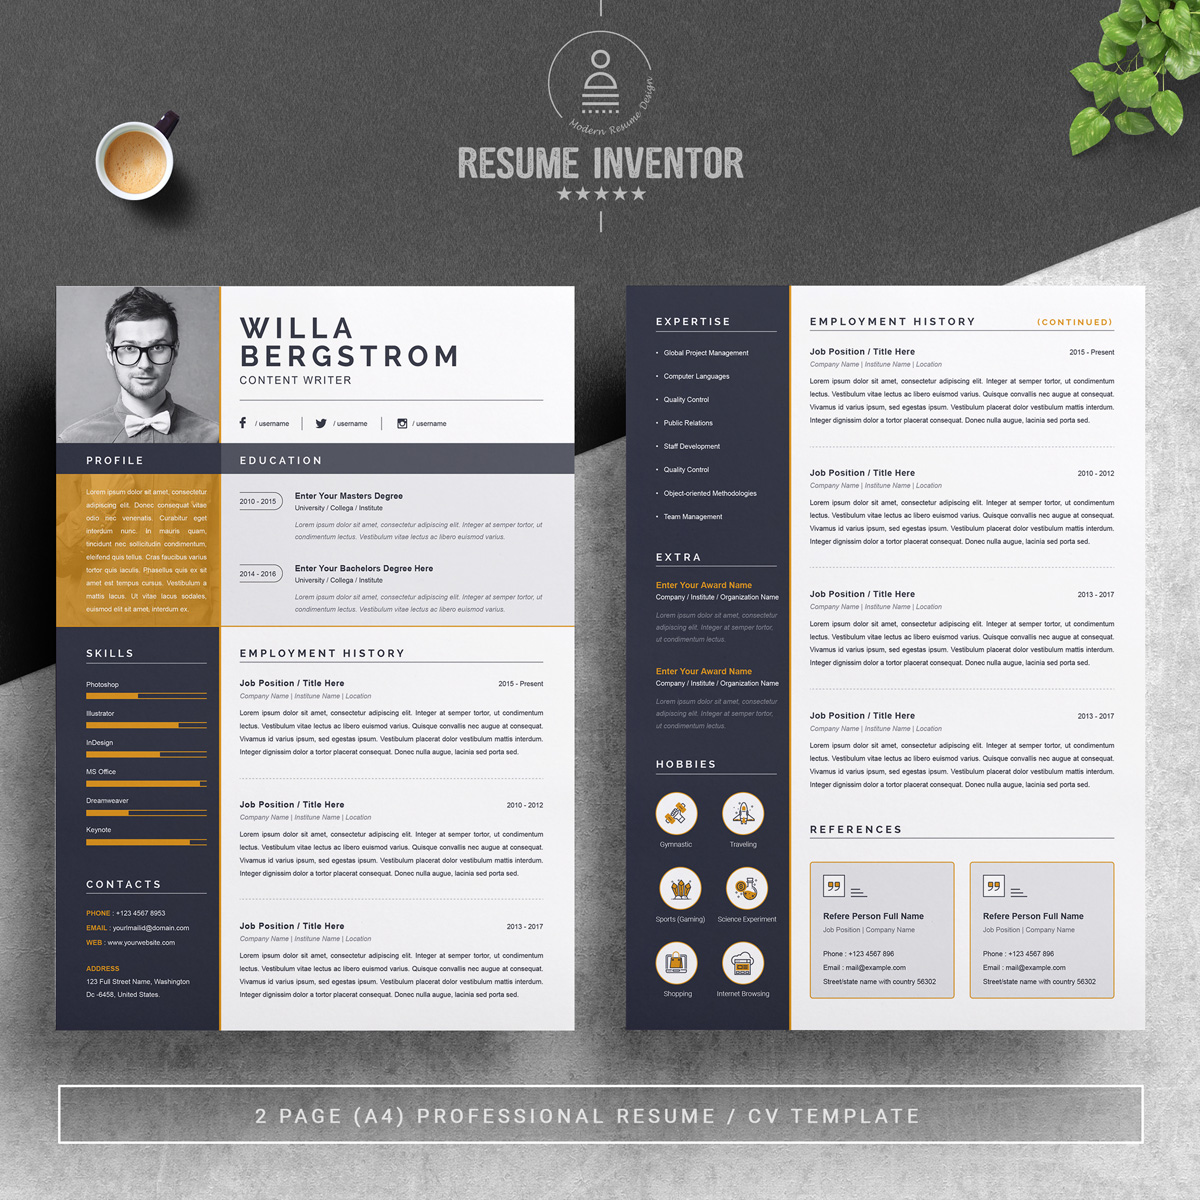 https://s3u.tmimgcdn.com/1860567-1554011321755_02_2-Pages-Free-Resume-Design-Template.jpg